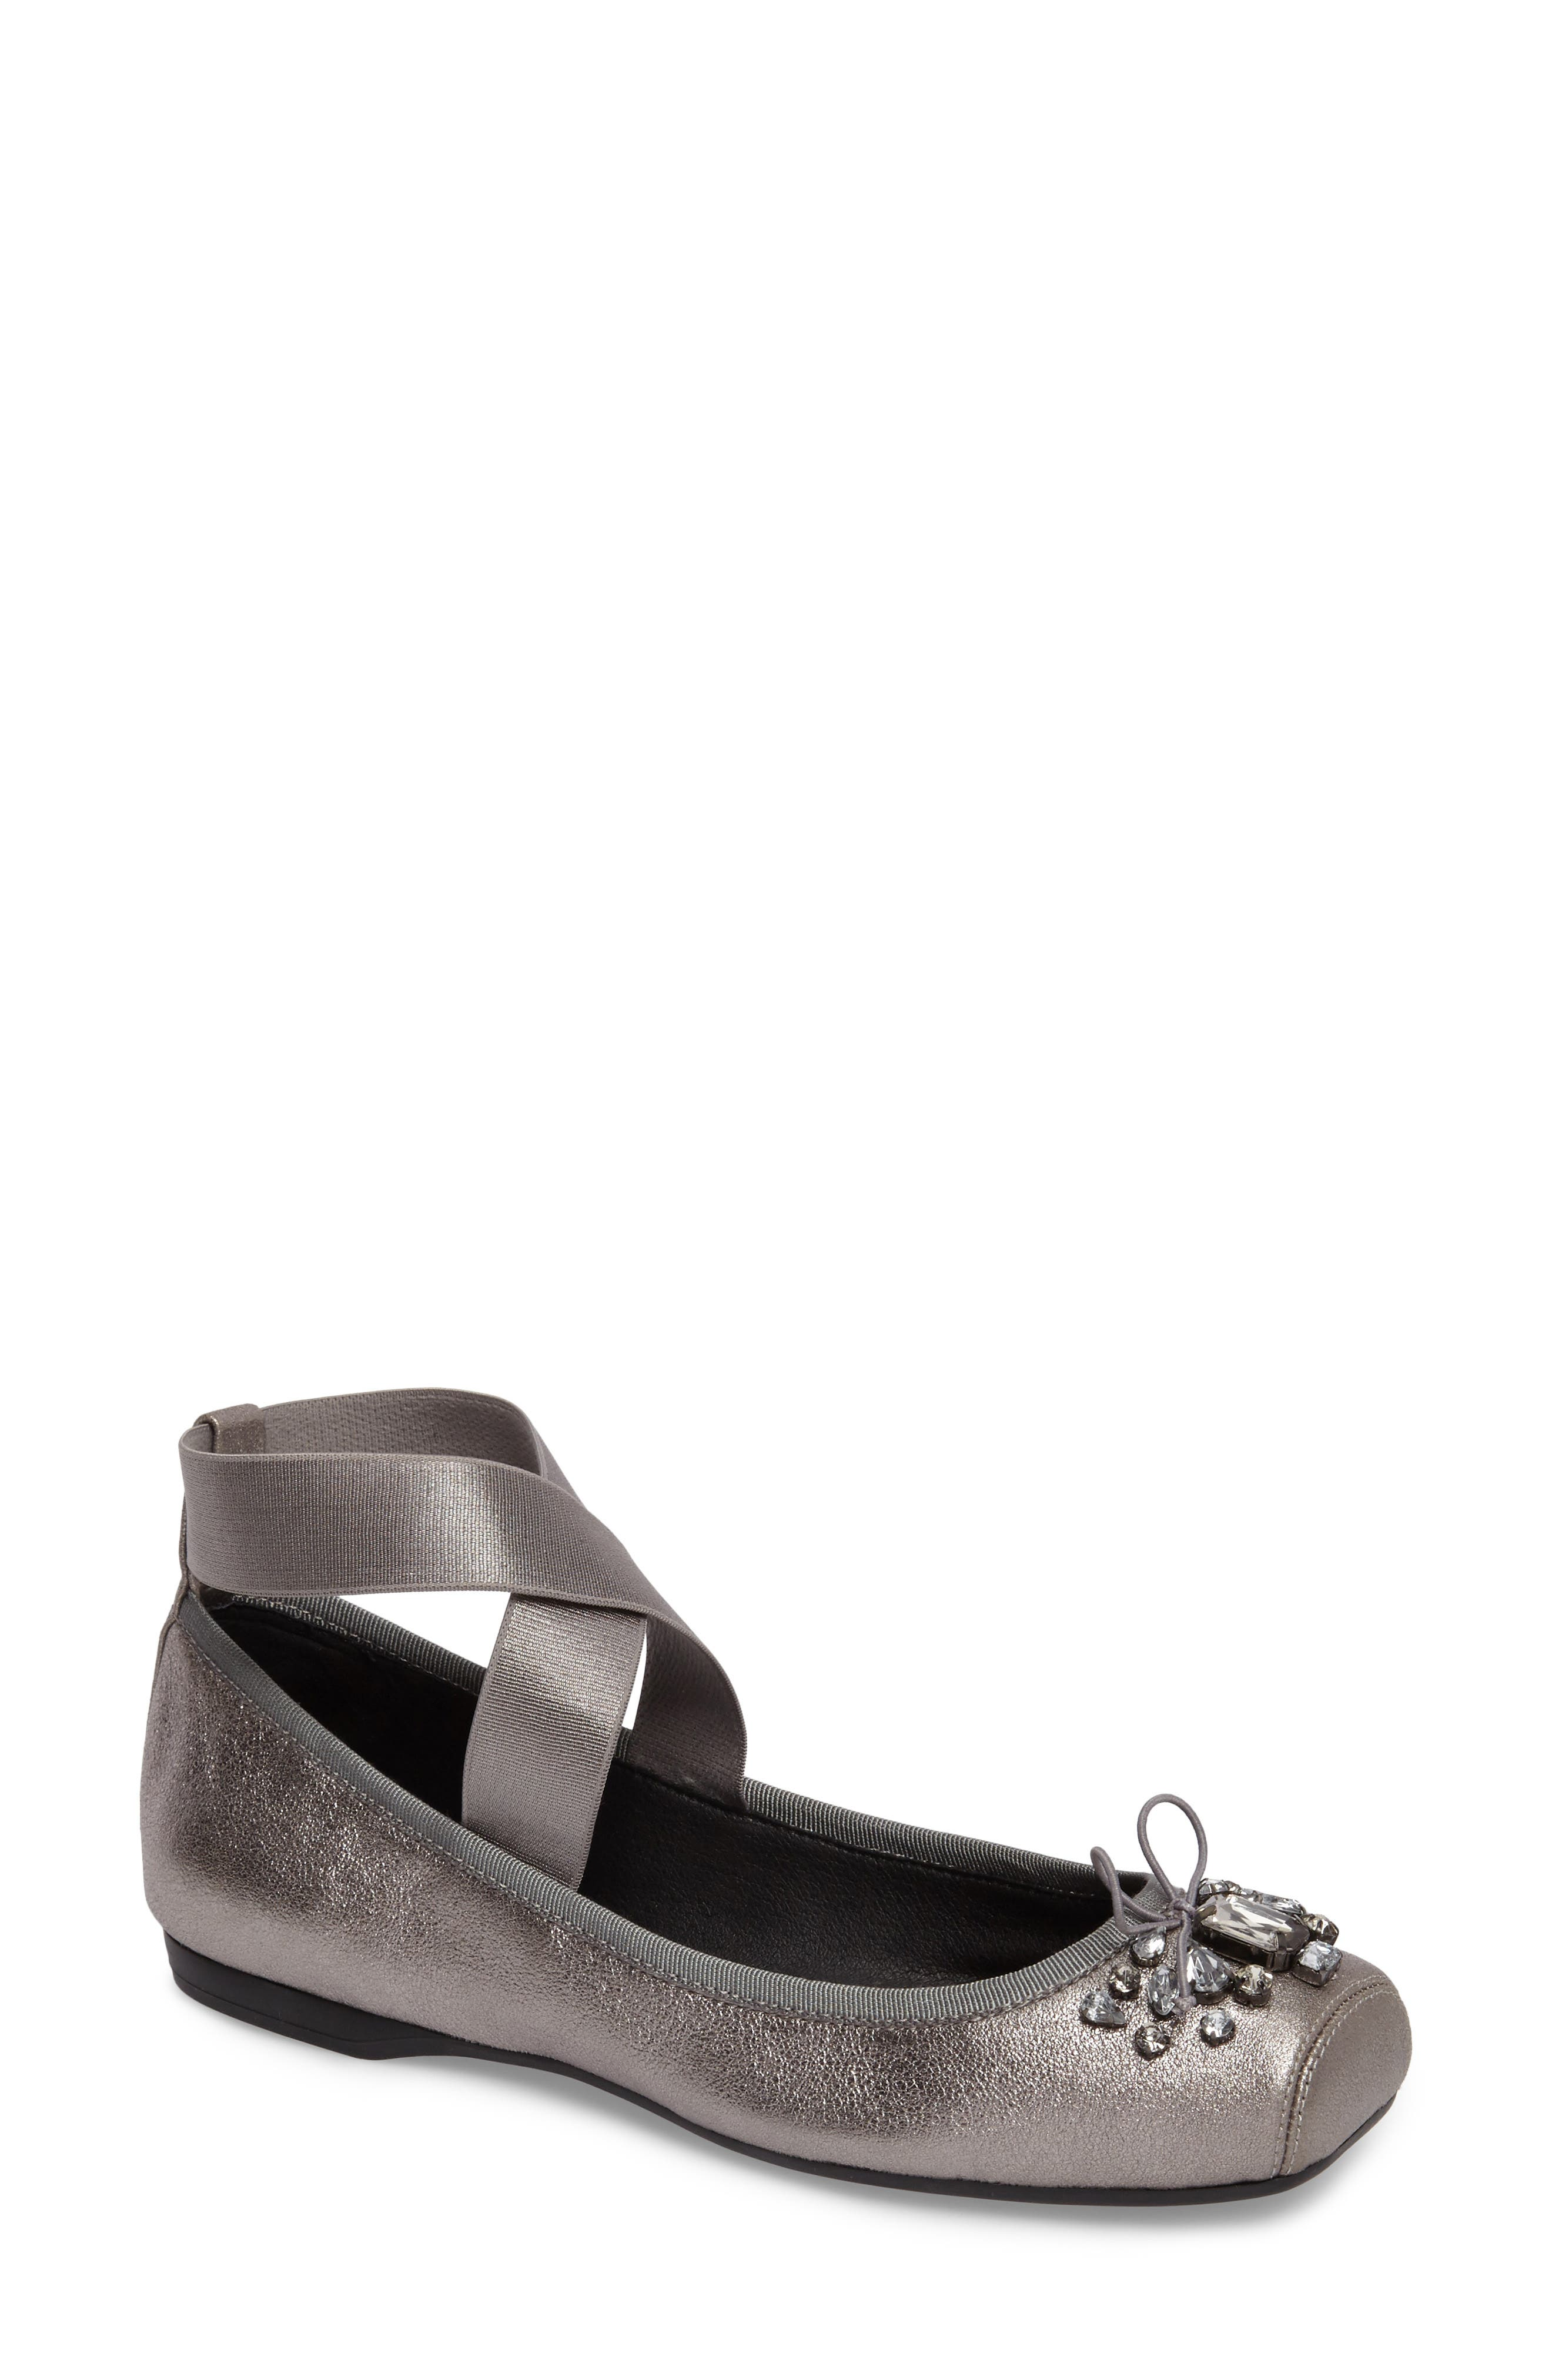 Miaha Embellished Blunt Toe Flat,                         Main,                         color, Alloy Leather